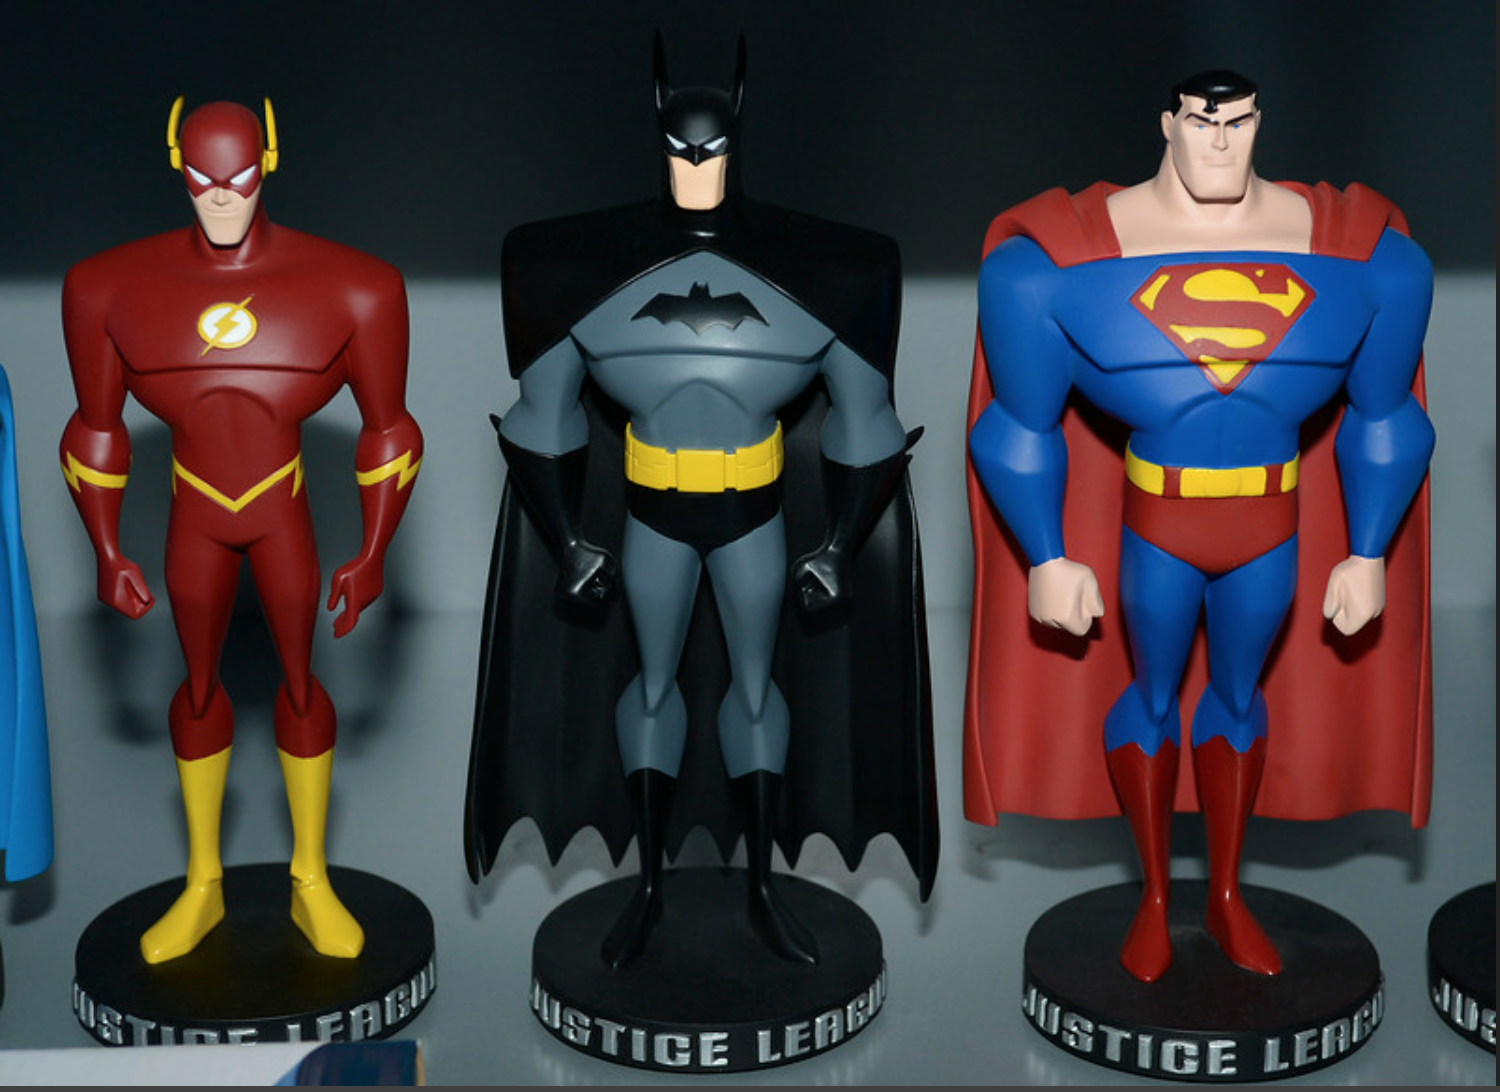 Justice League in Jim Lee's office